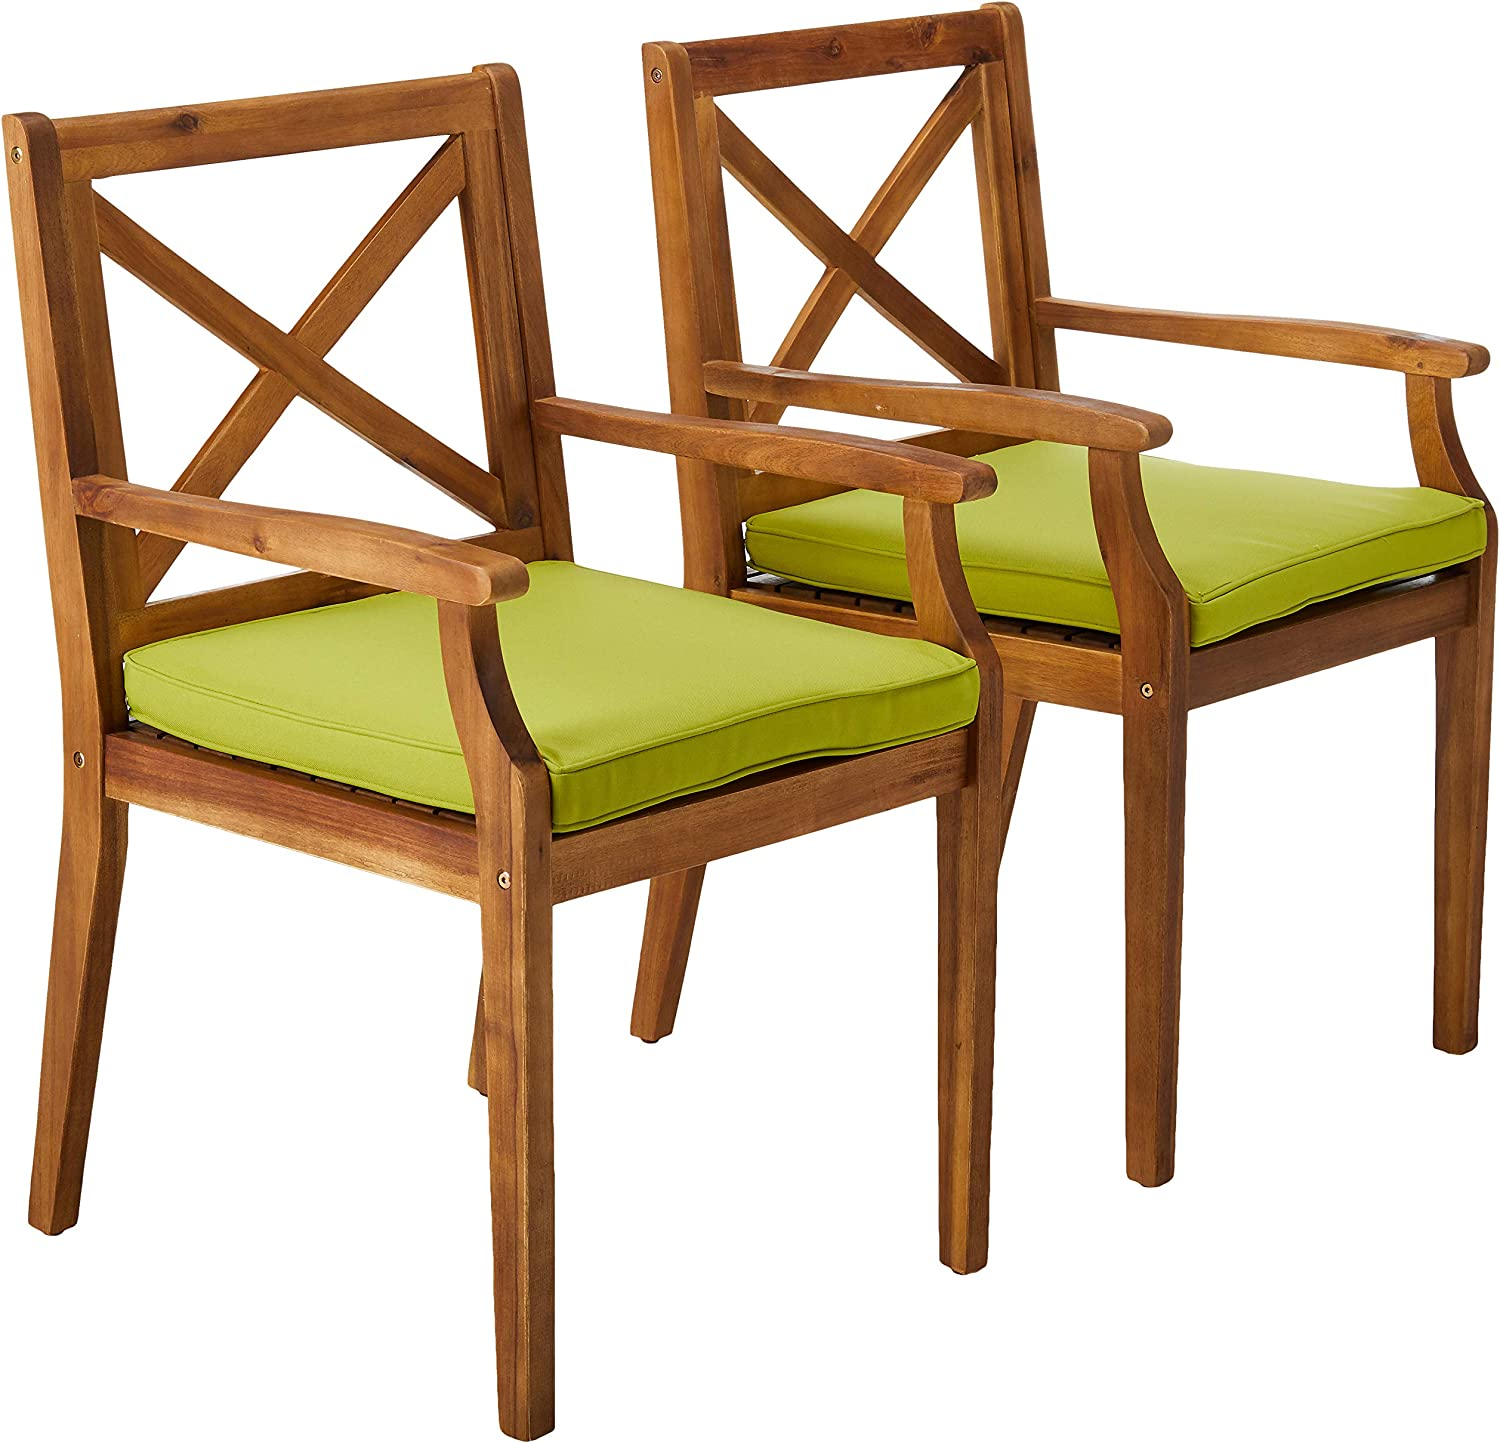 Christopher Knight Home 304683 Peter Outdoor Acacia Wood Dining Chair Set of 2, Teak Green Cushion